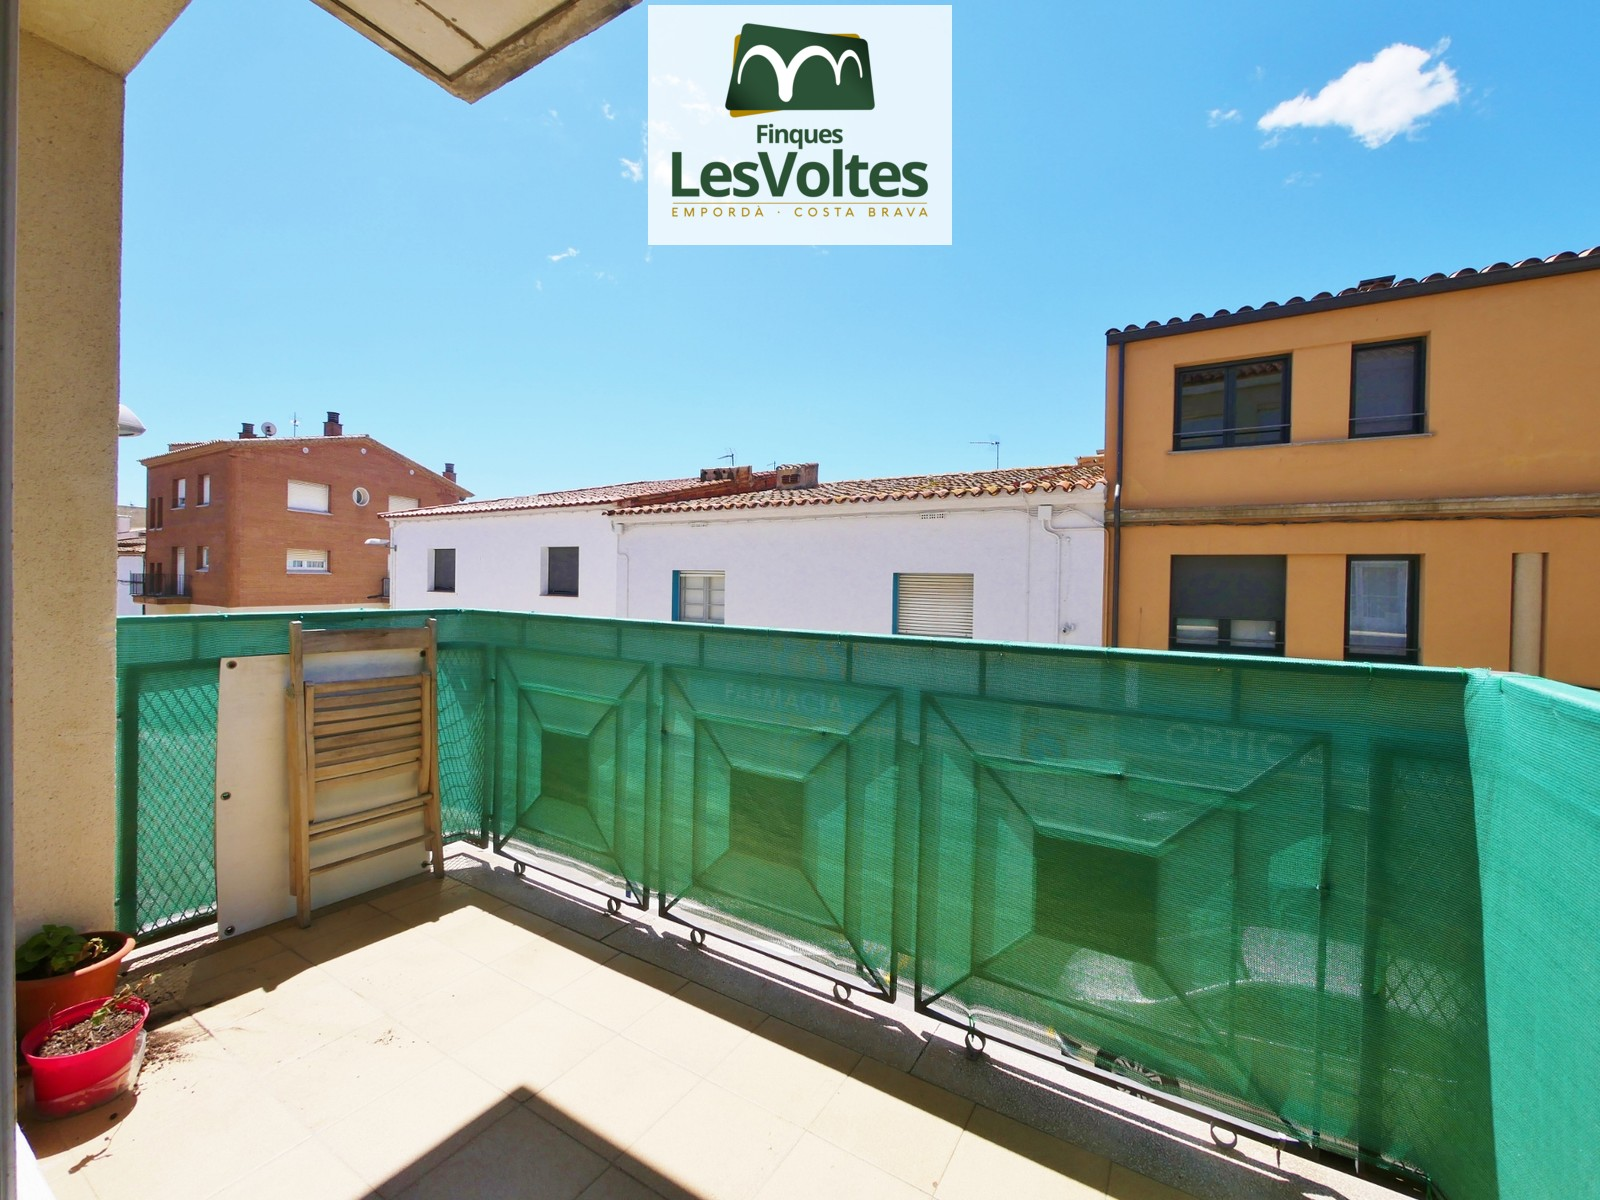 Magnificent apartment with parking space and balcony for rent in Palafrugell. Furnished and equipped apartment ready to move